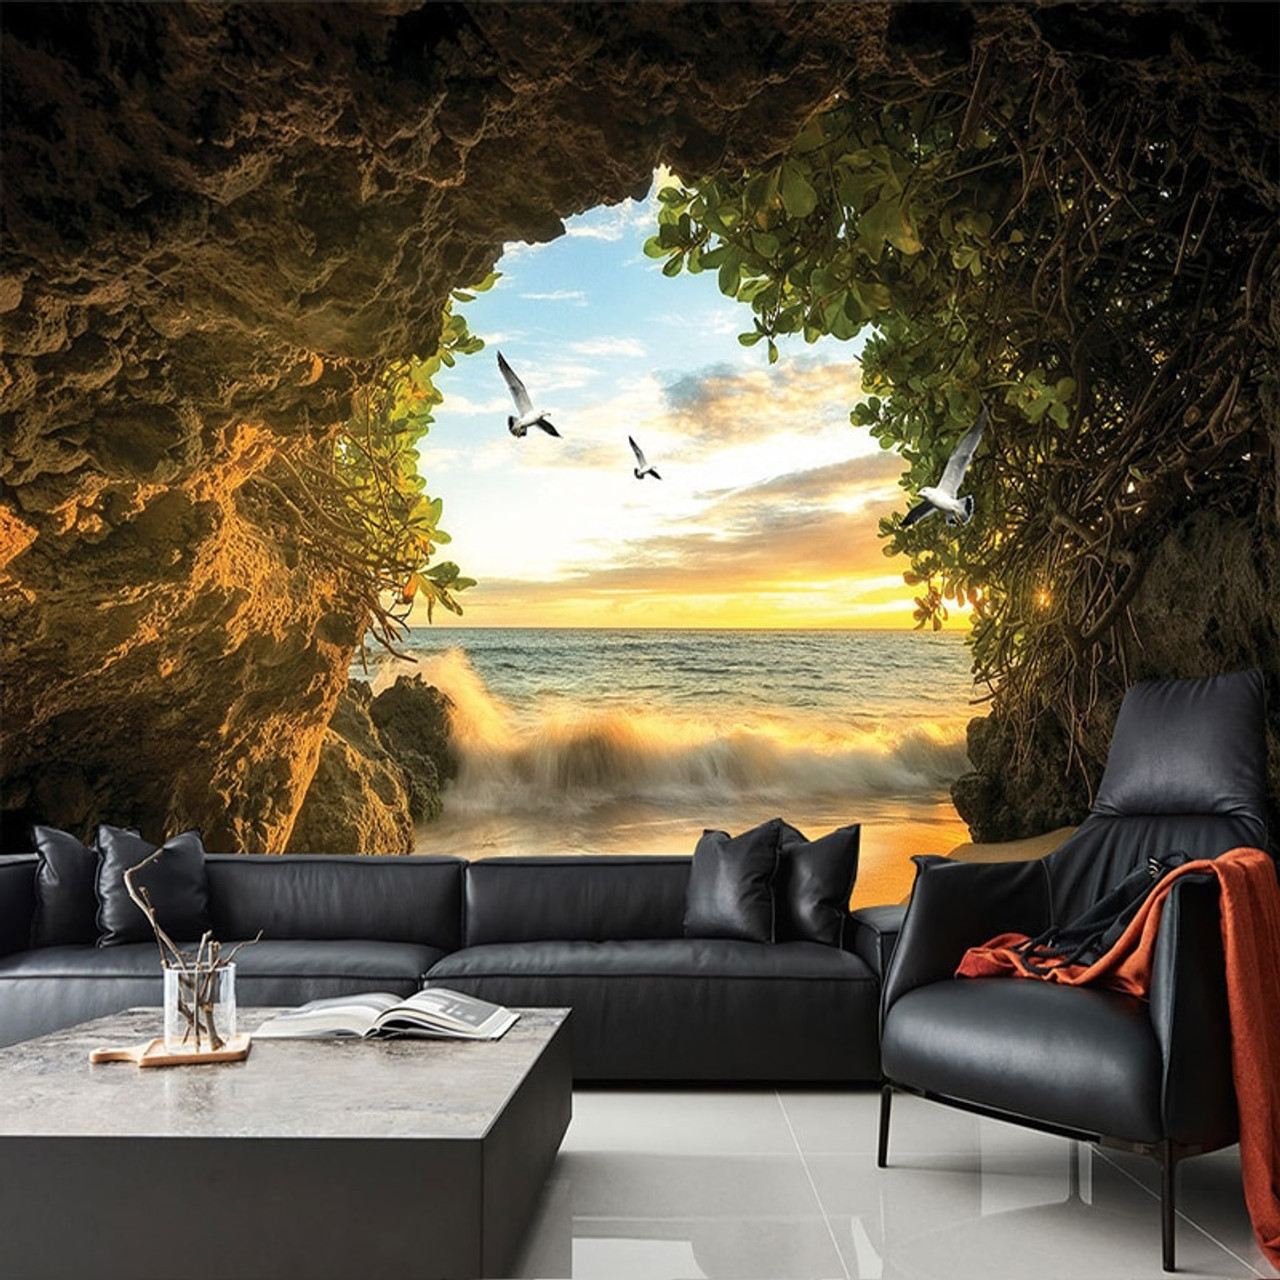 Custom 3d Photo Wallpaper Cave Nature Landscape Tv Background Wall Mural Wallpaper For Living Room Bedroom Backdrop Art Decor